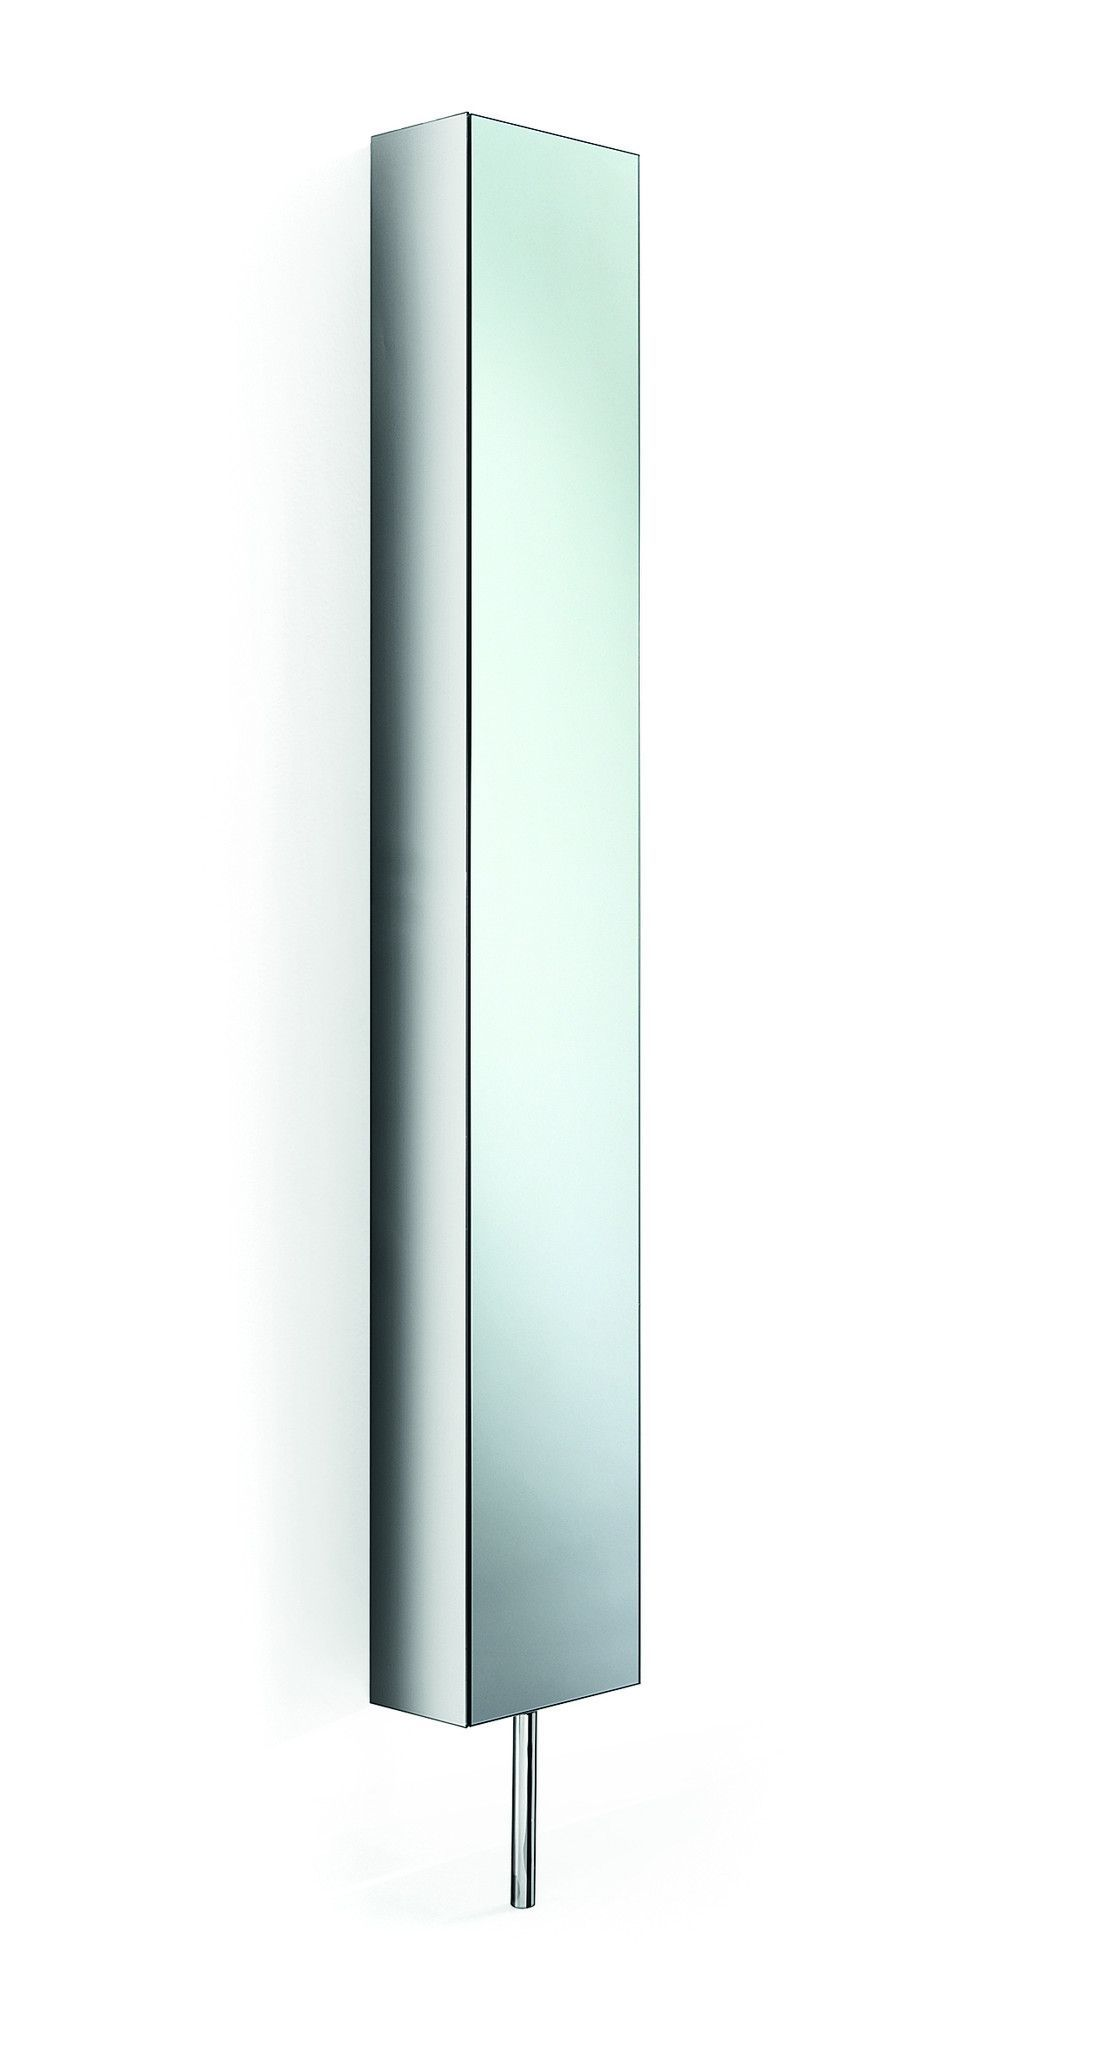 Tall Bathroom Cabinet With Mirror Linea Pika Tower 360 Degree Rotating Floor Cabinet With Full